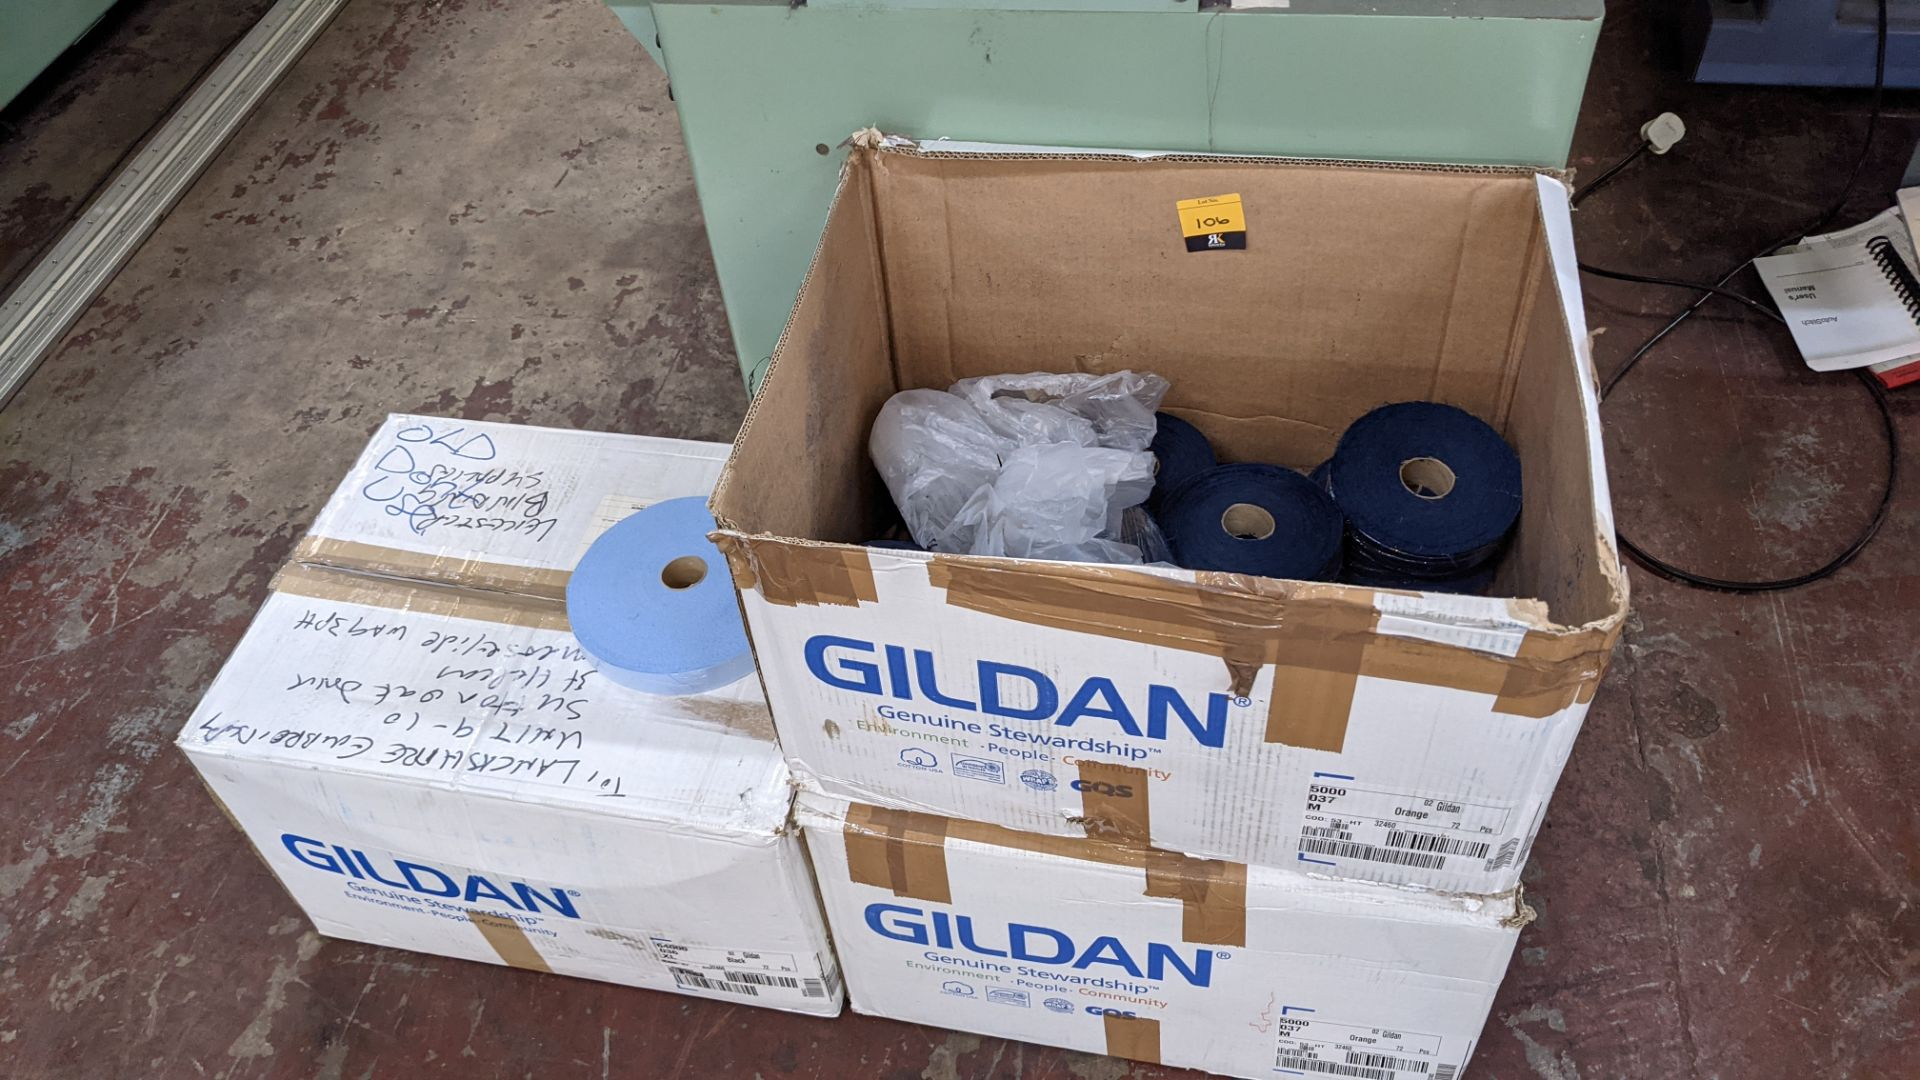 3 boxes/part boxes of blue fabric tape - Image 2 of 6